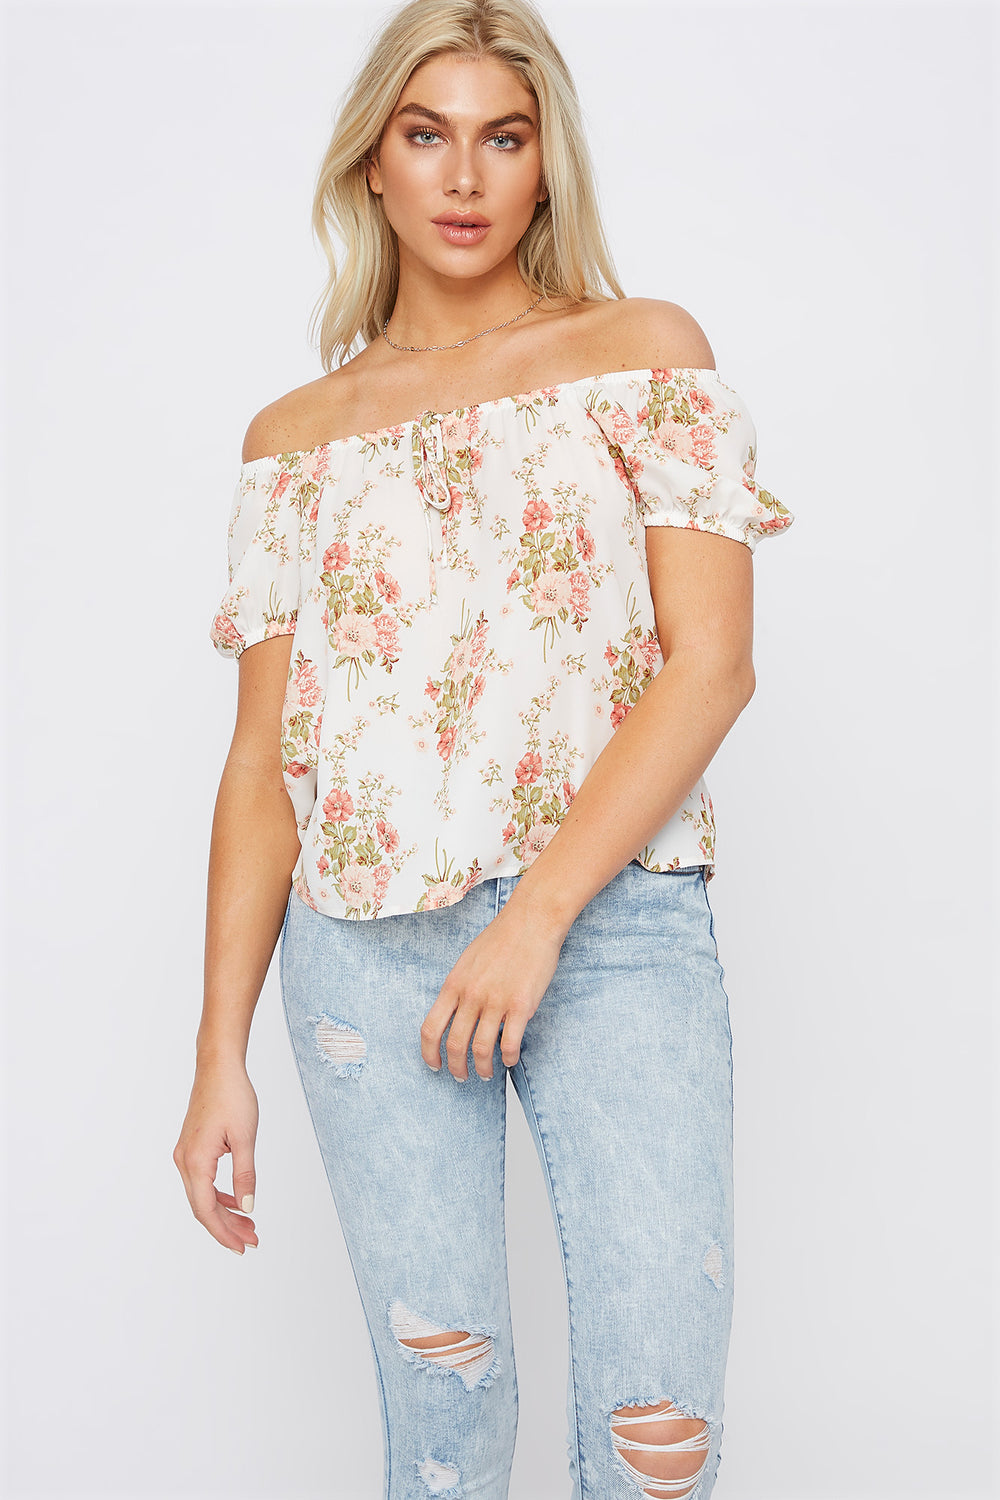 Floral Off The Shoulder Bow Top White